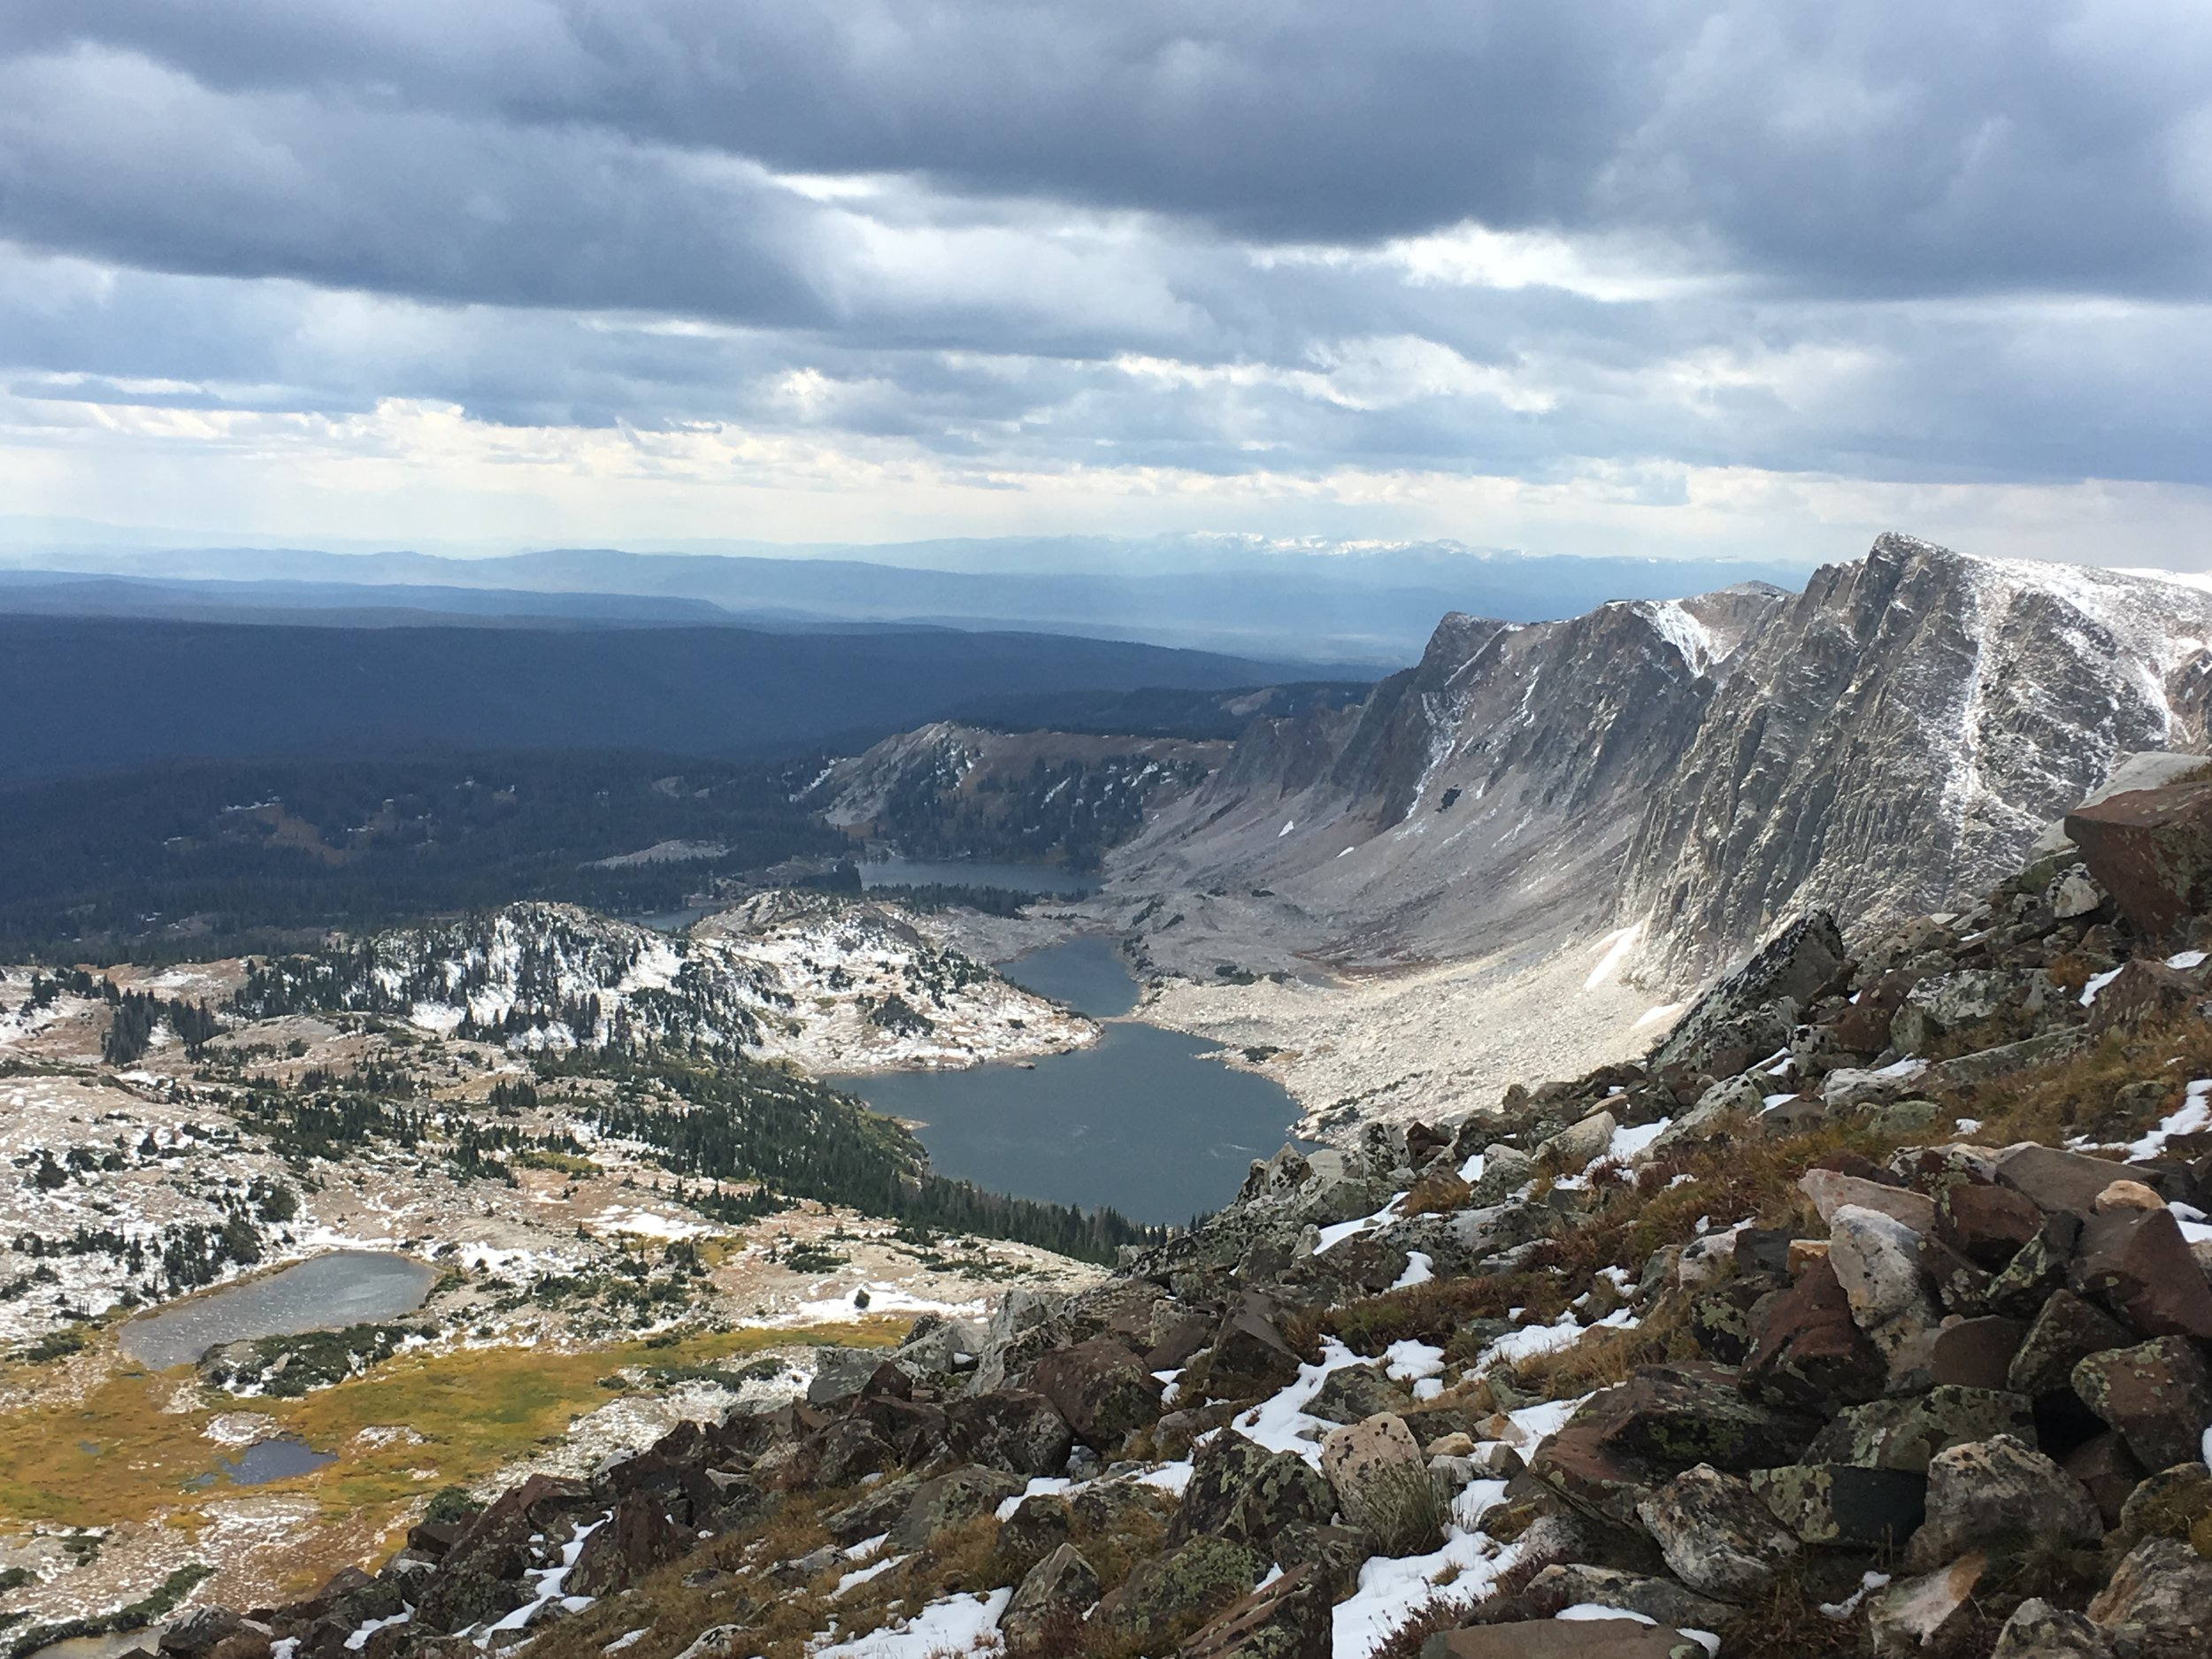 View on the way down from Medicine Bow Peak